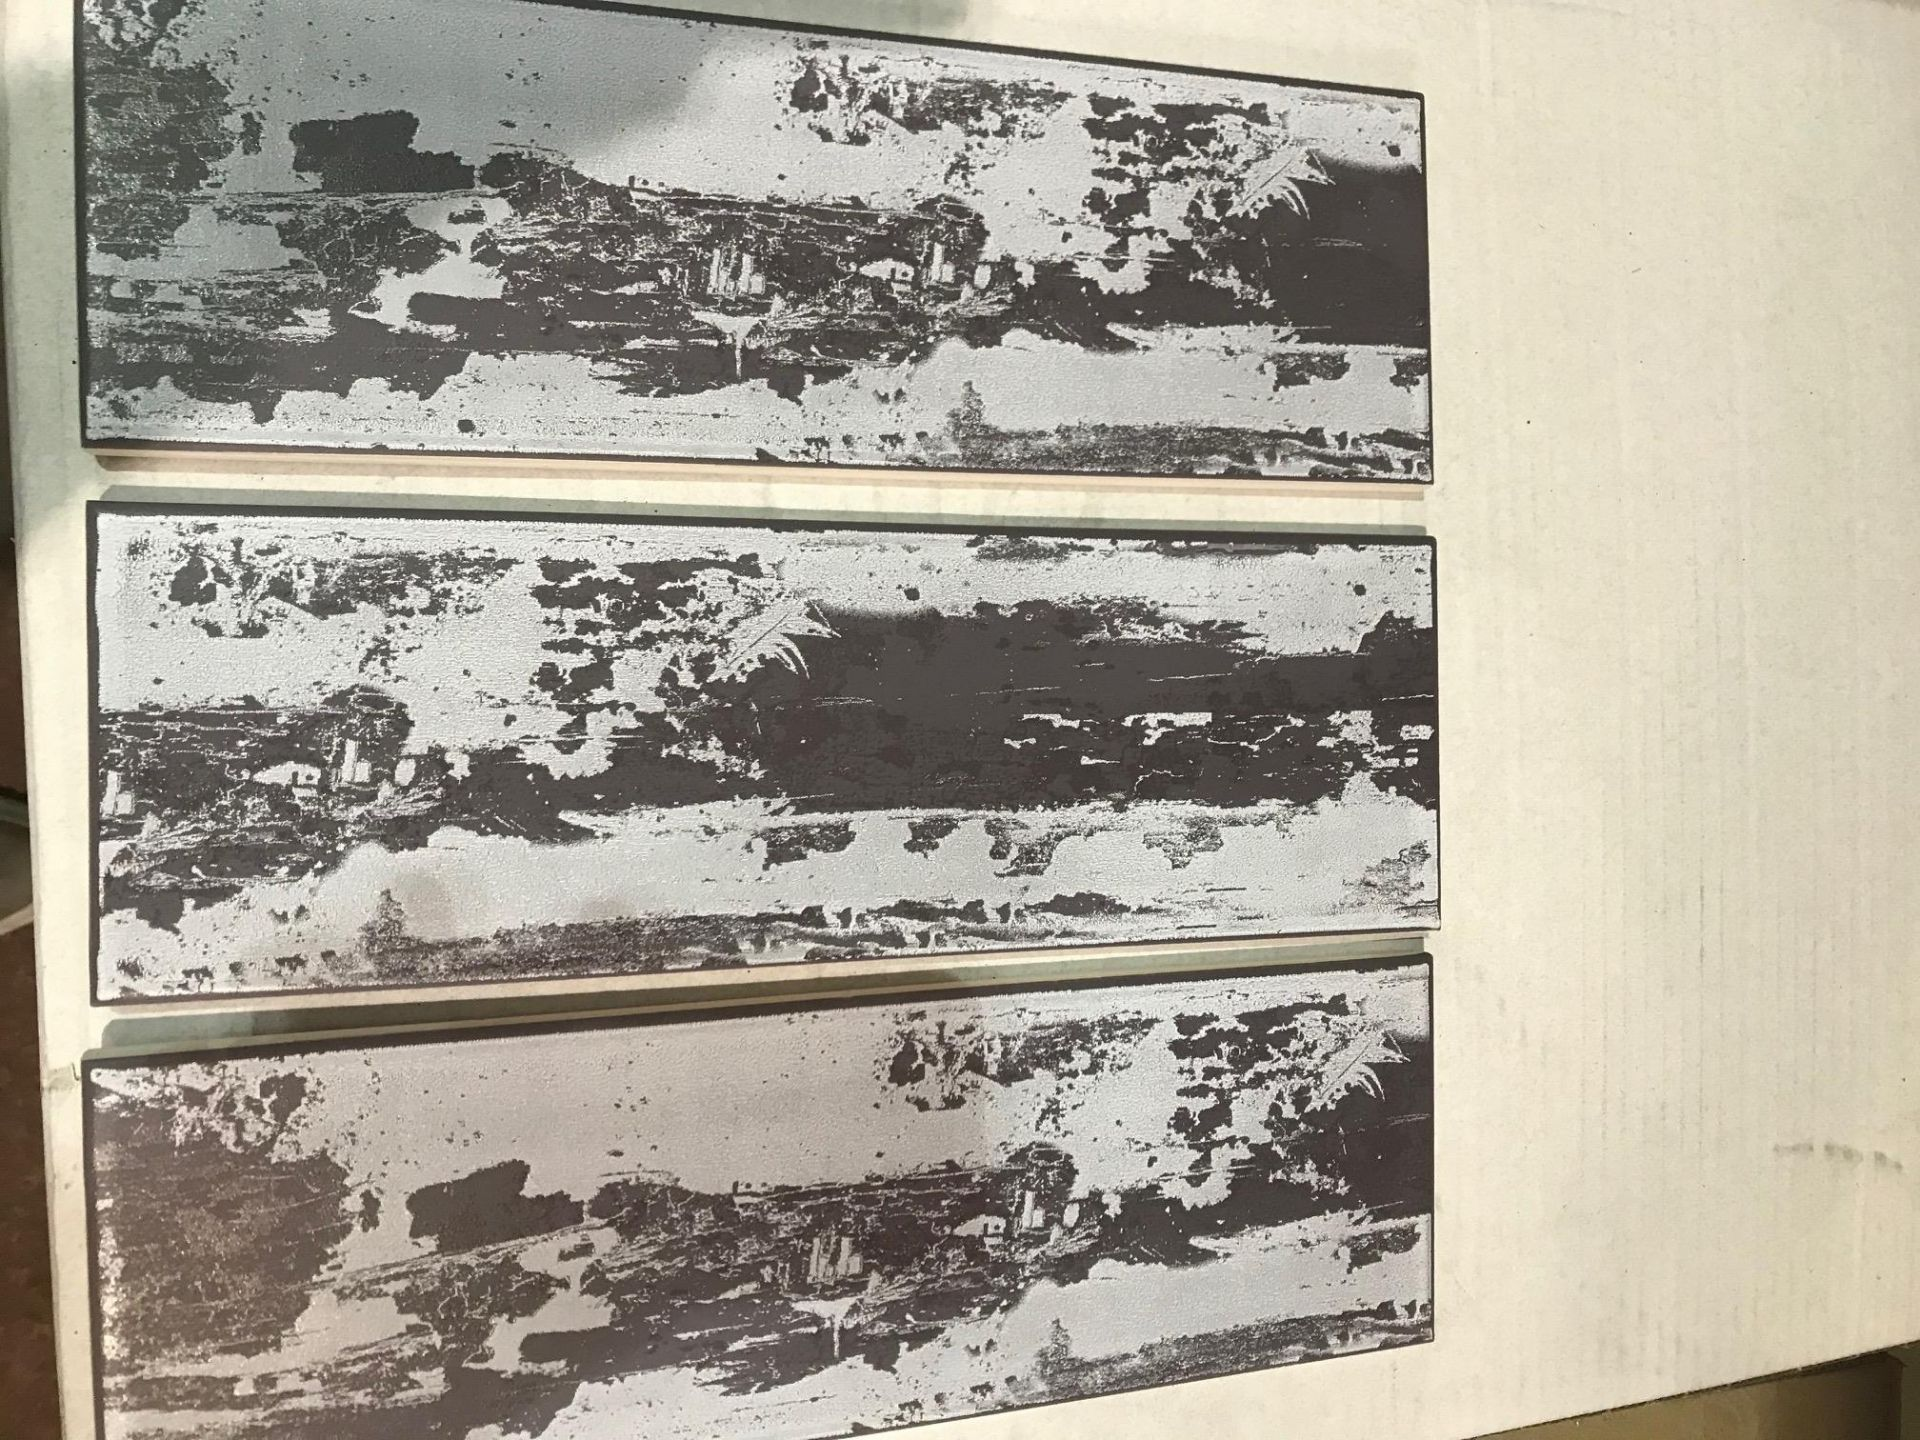 Lot 462 - 5.1m2 Aura Mulberry Satin Ceramic Wall tile. (L)300mm (W)100mm per tile. Influenced by interior...